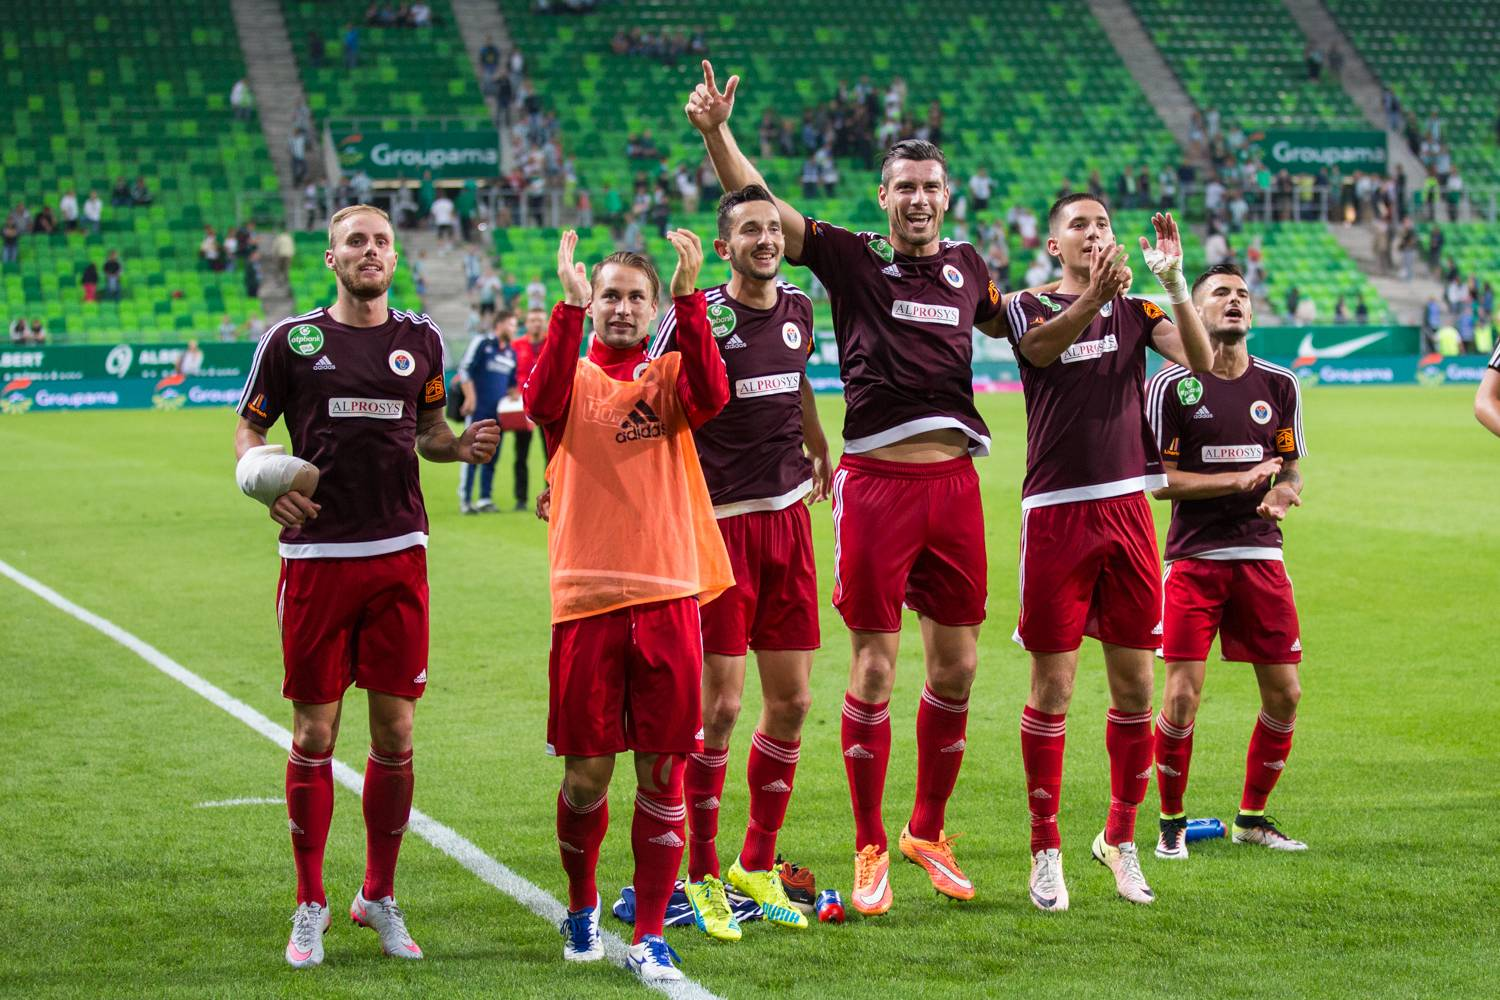 Kire Ristevski (third from left) celebrating with his teammates, photo: vasasfc.hu